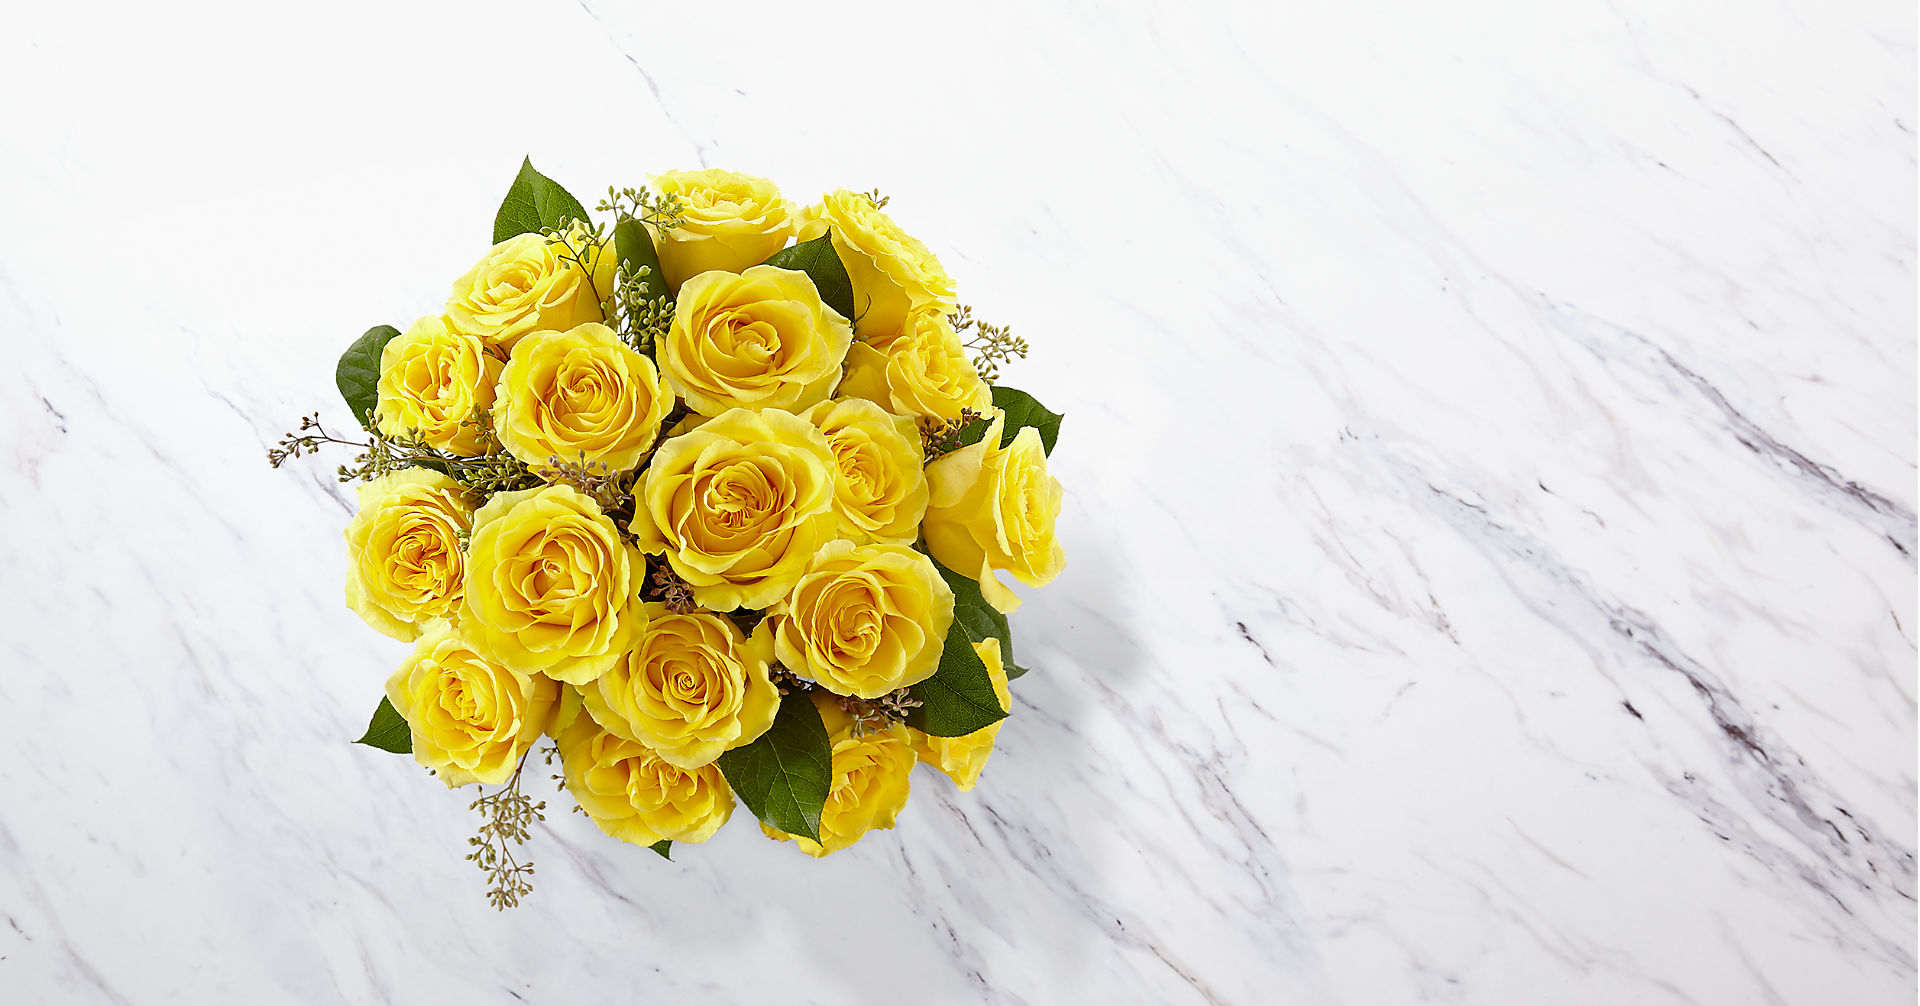 The Yellow Rose Bouquet - Image 2 Of 2